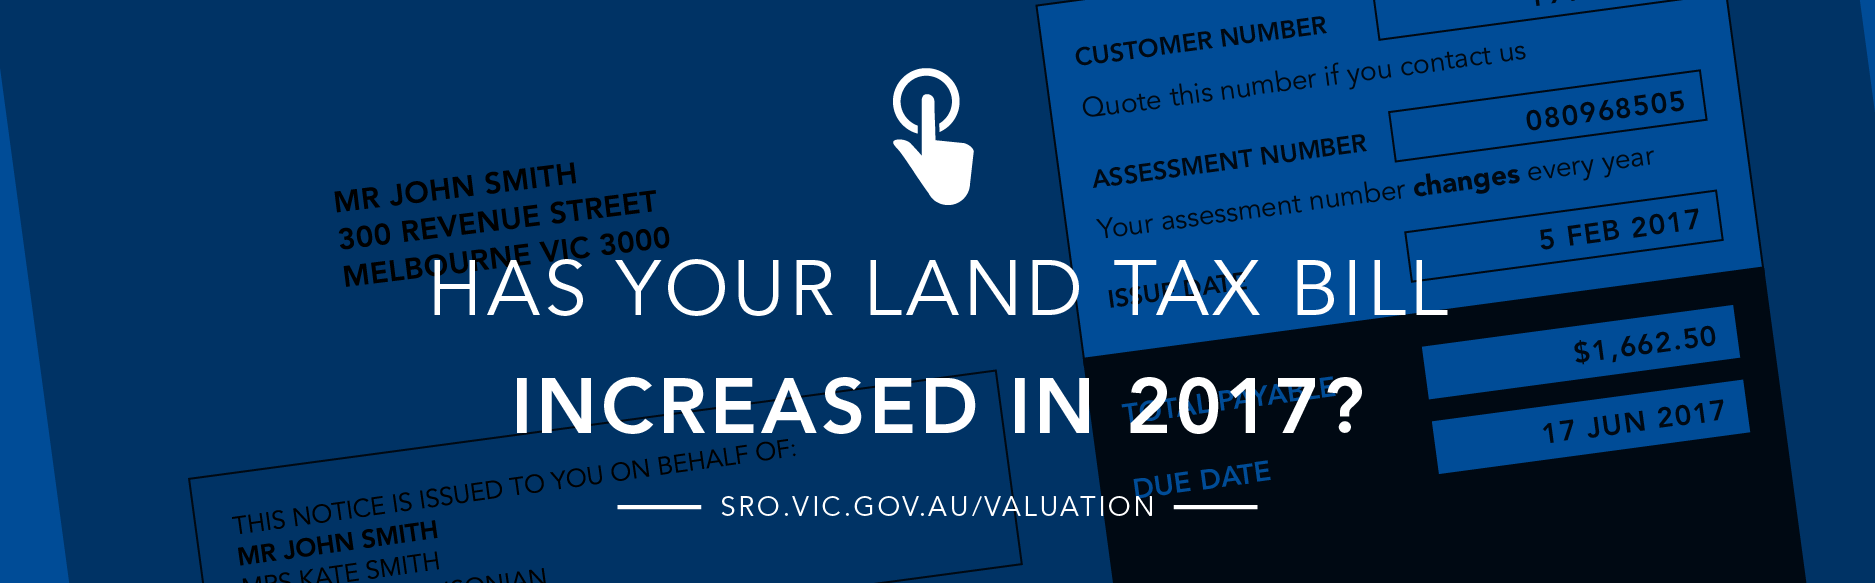 Has your land tax bill increased this year?